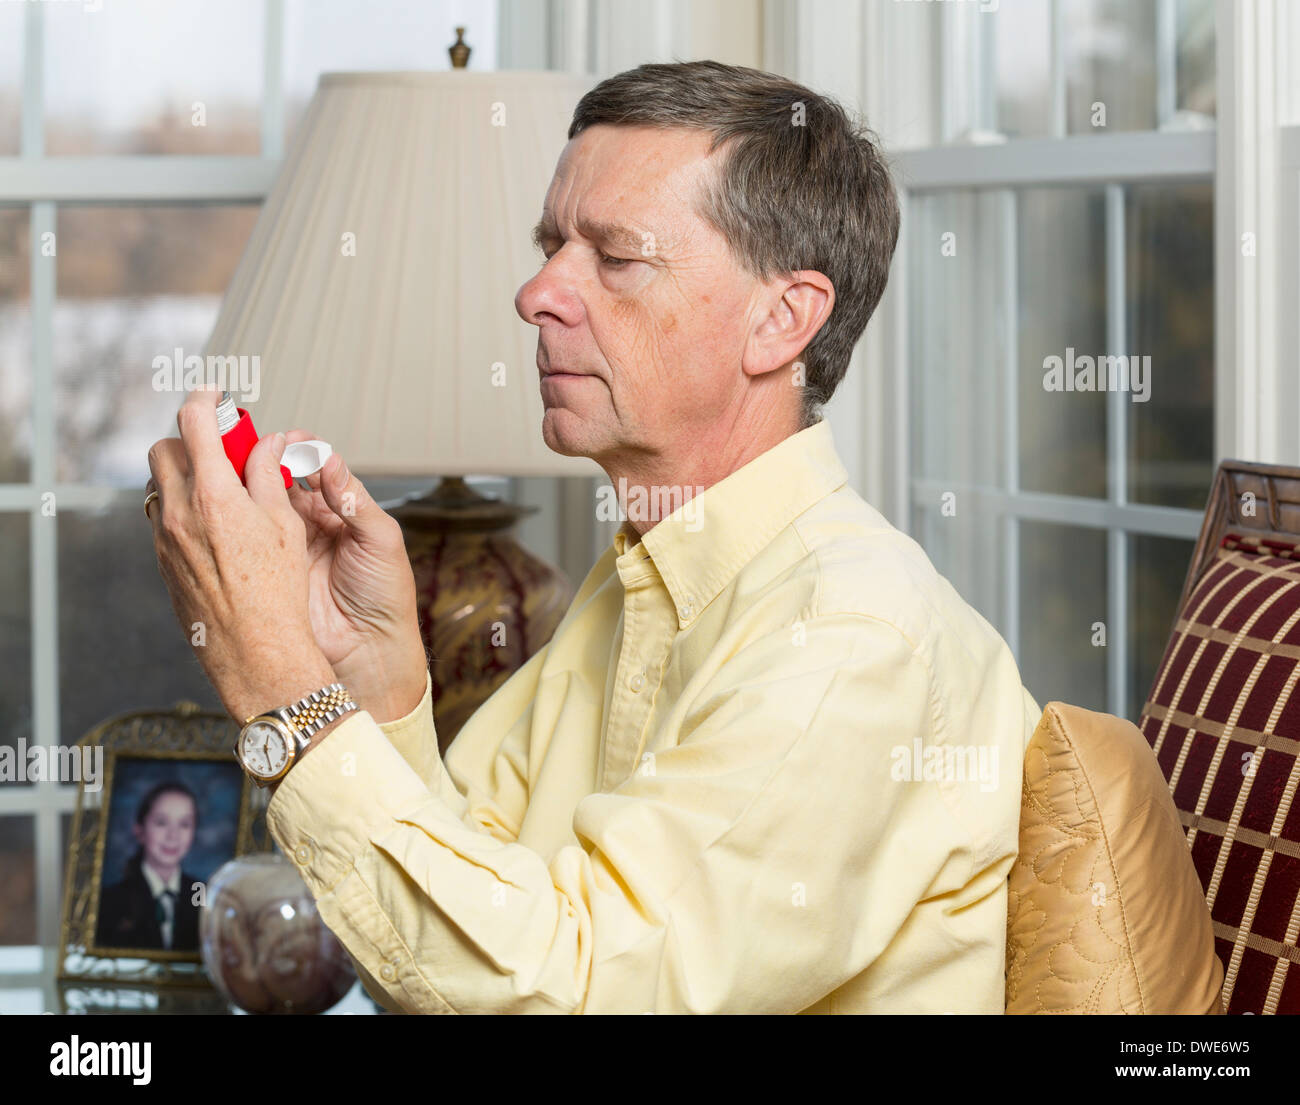 Senior, late middle-aged man at home about to use an asthma inhaler - Stock Image